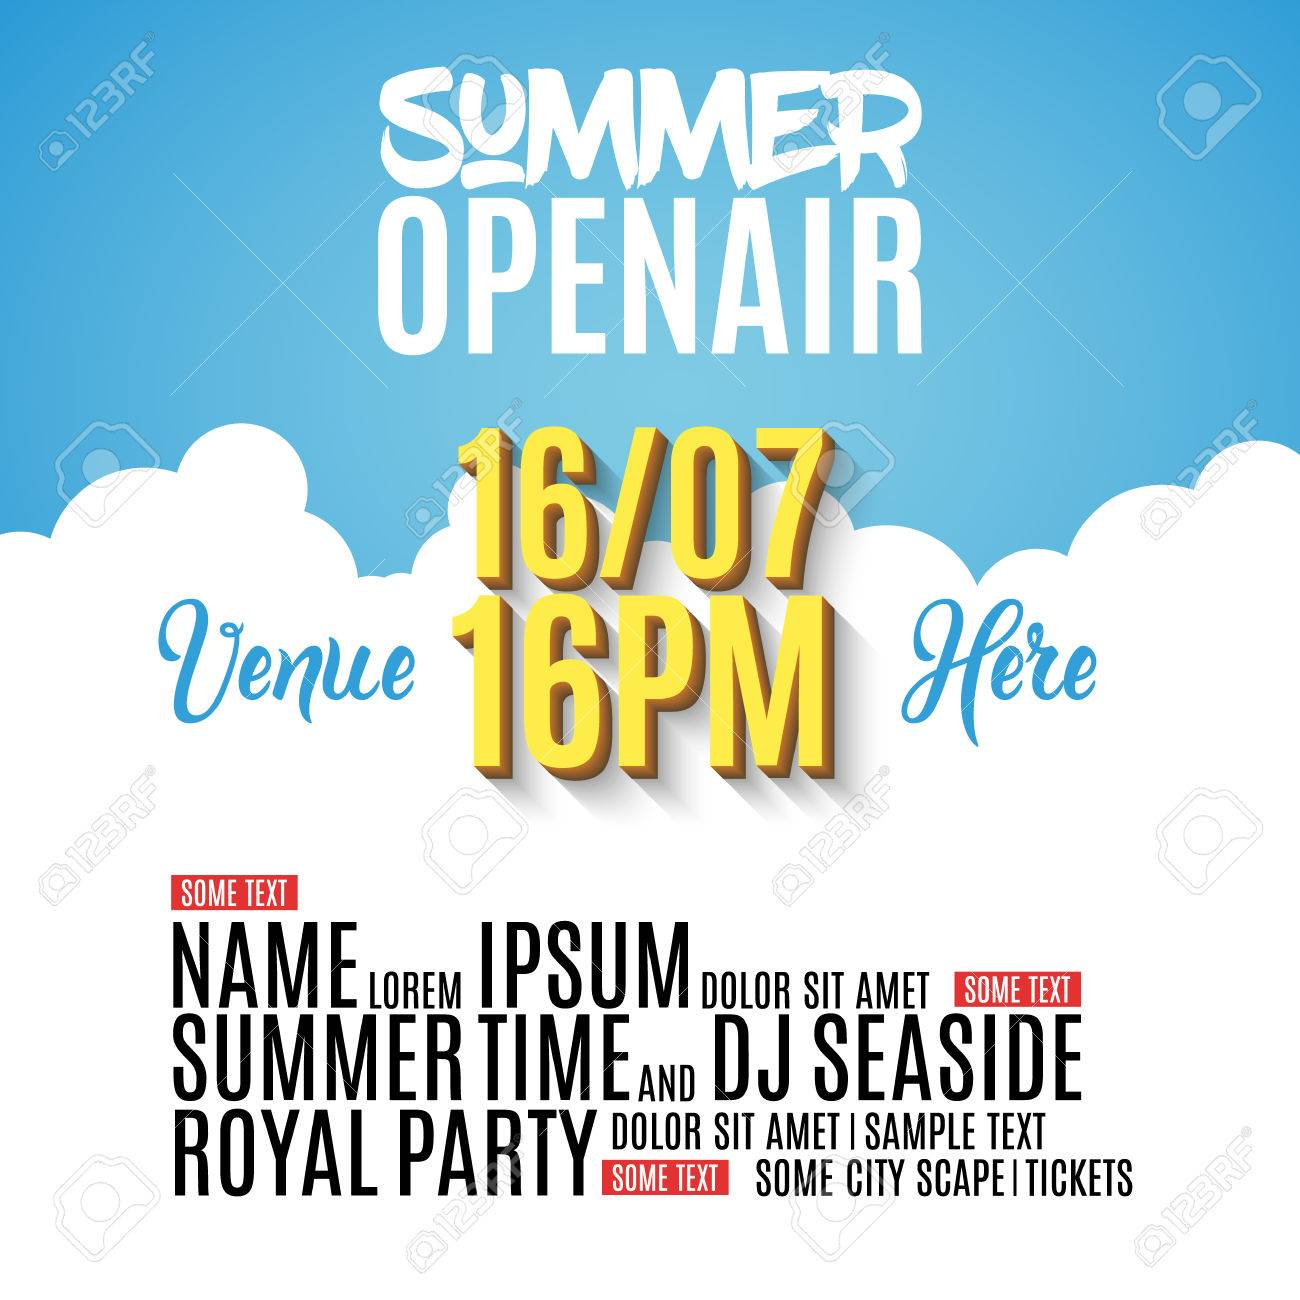 Open Air Festival Party Poster Design Flyer Or Poster Template